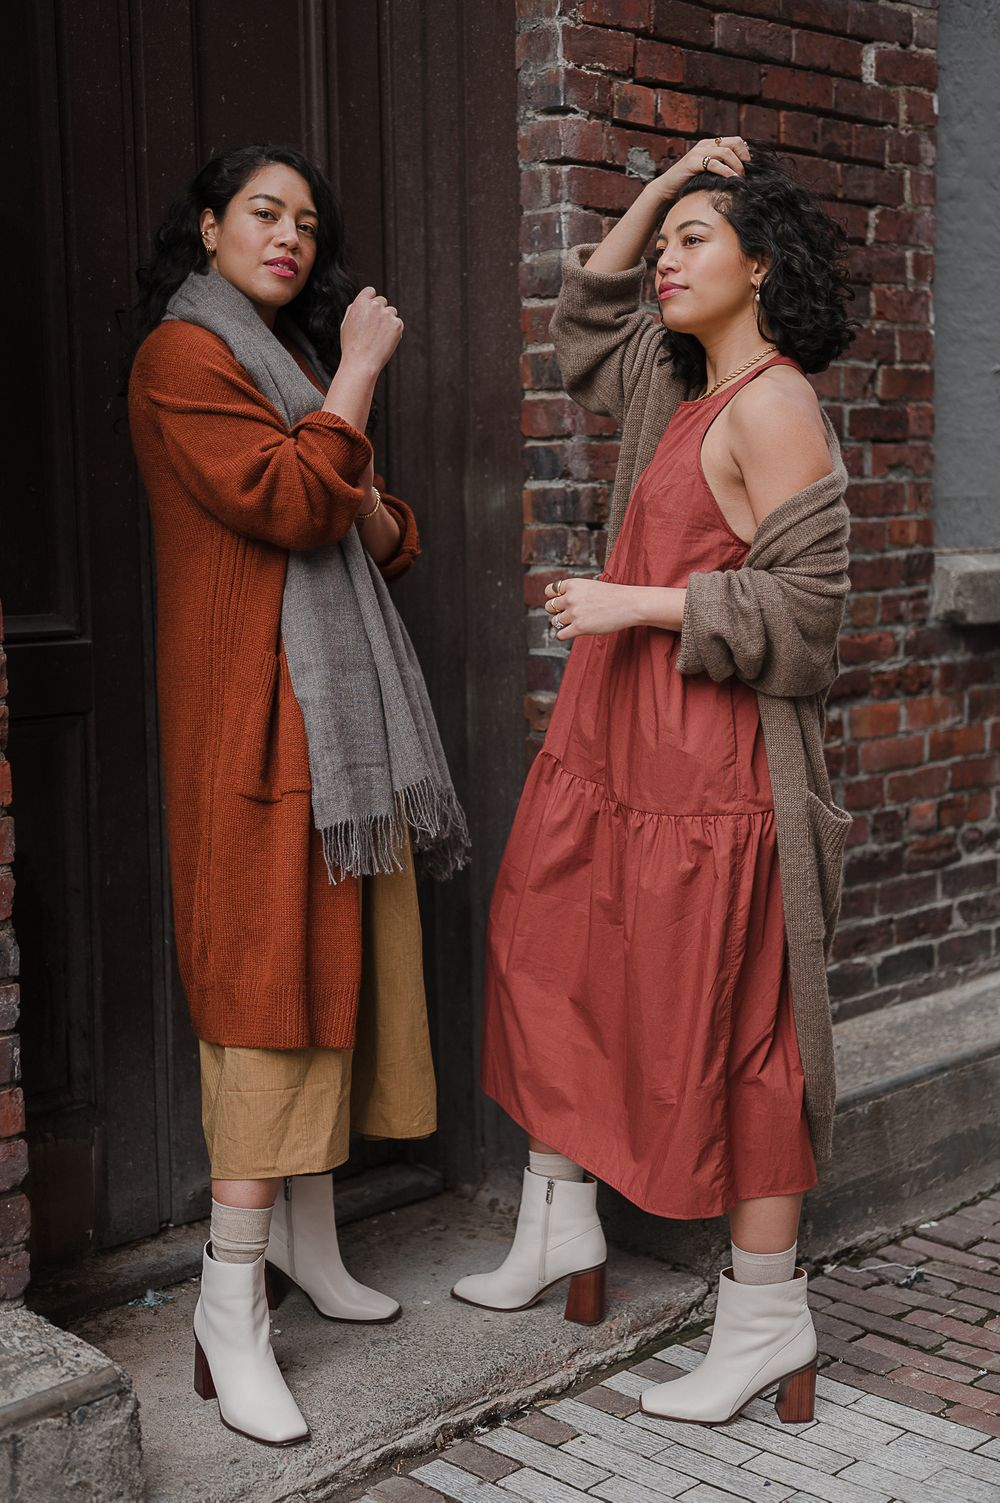 Brand campaign portrait by Tiffany Kelterer of two women standing in brick alley Seattle fashion designers clothing